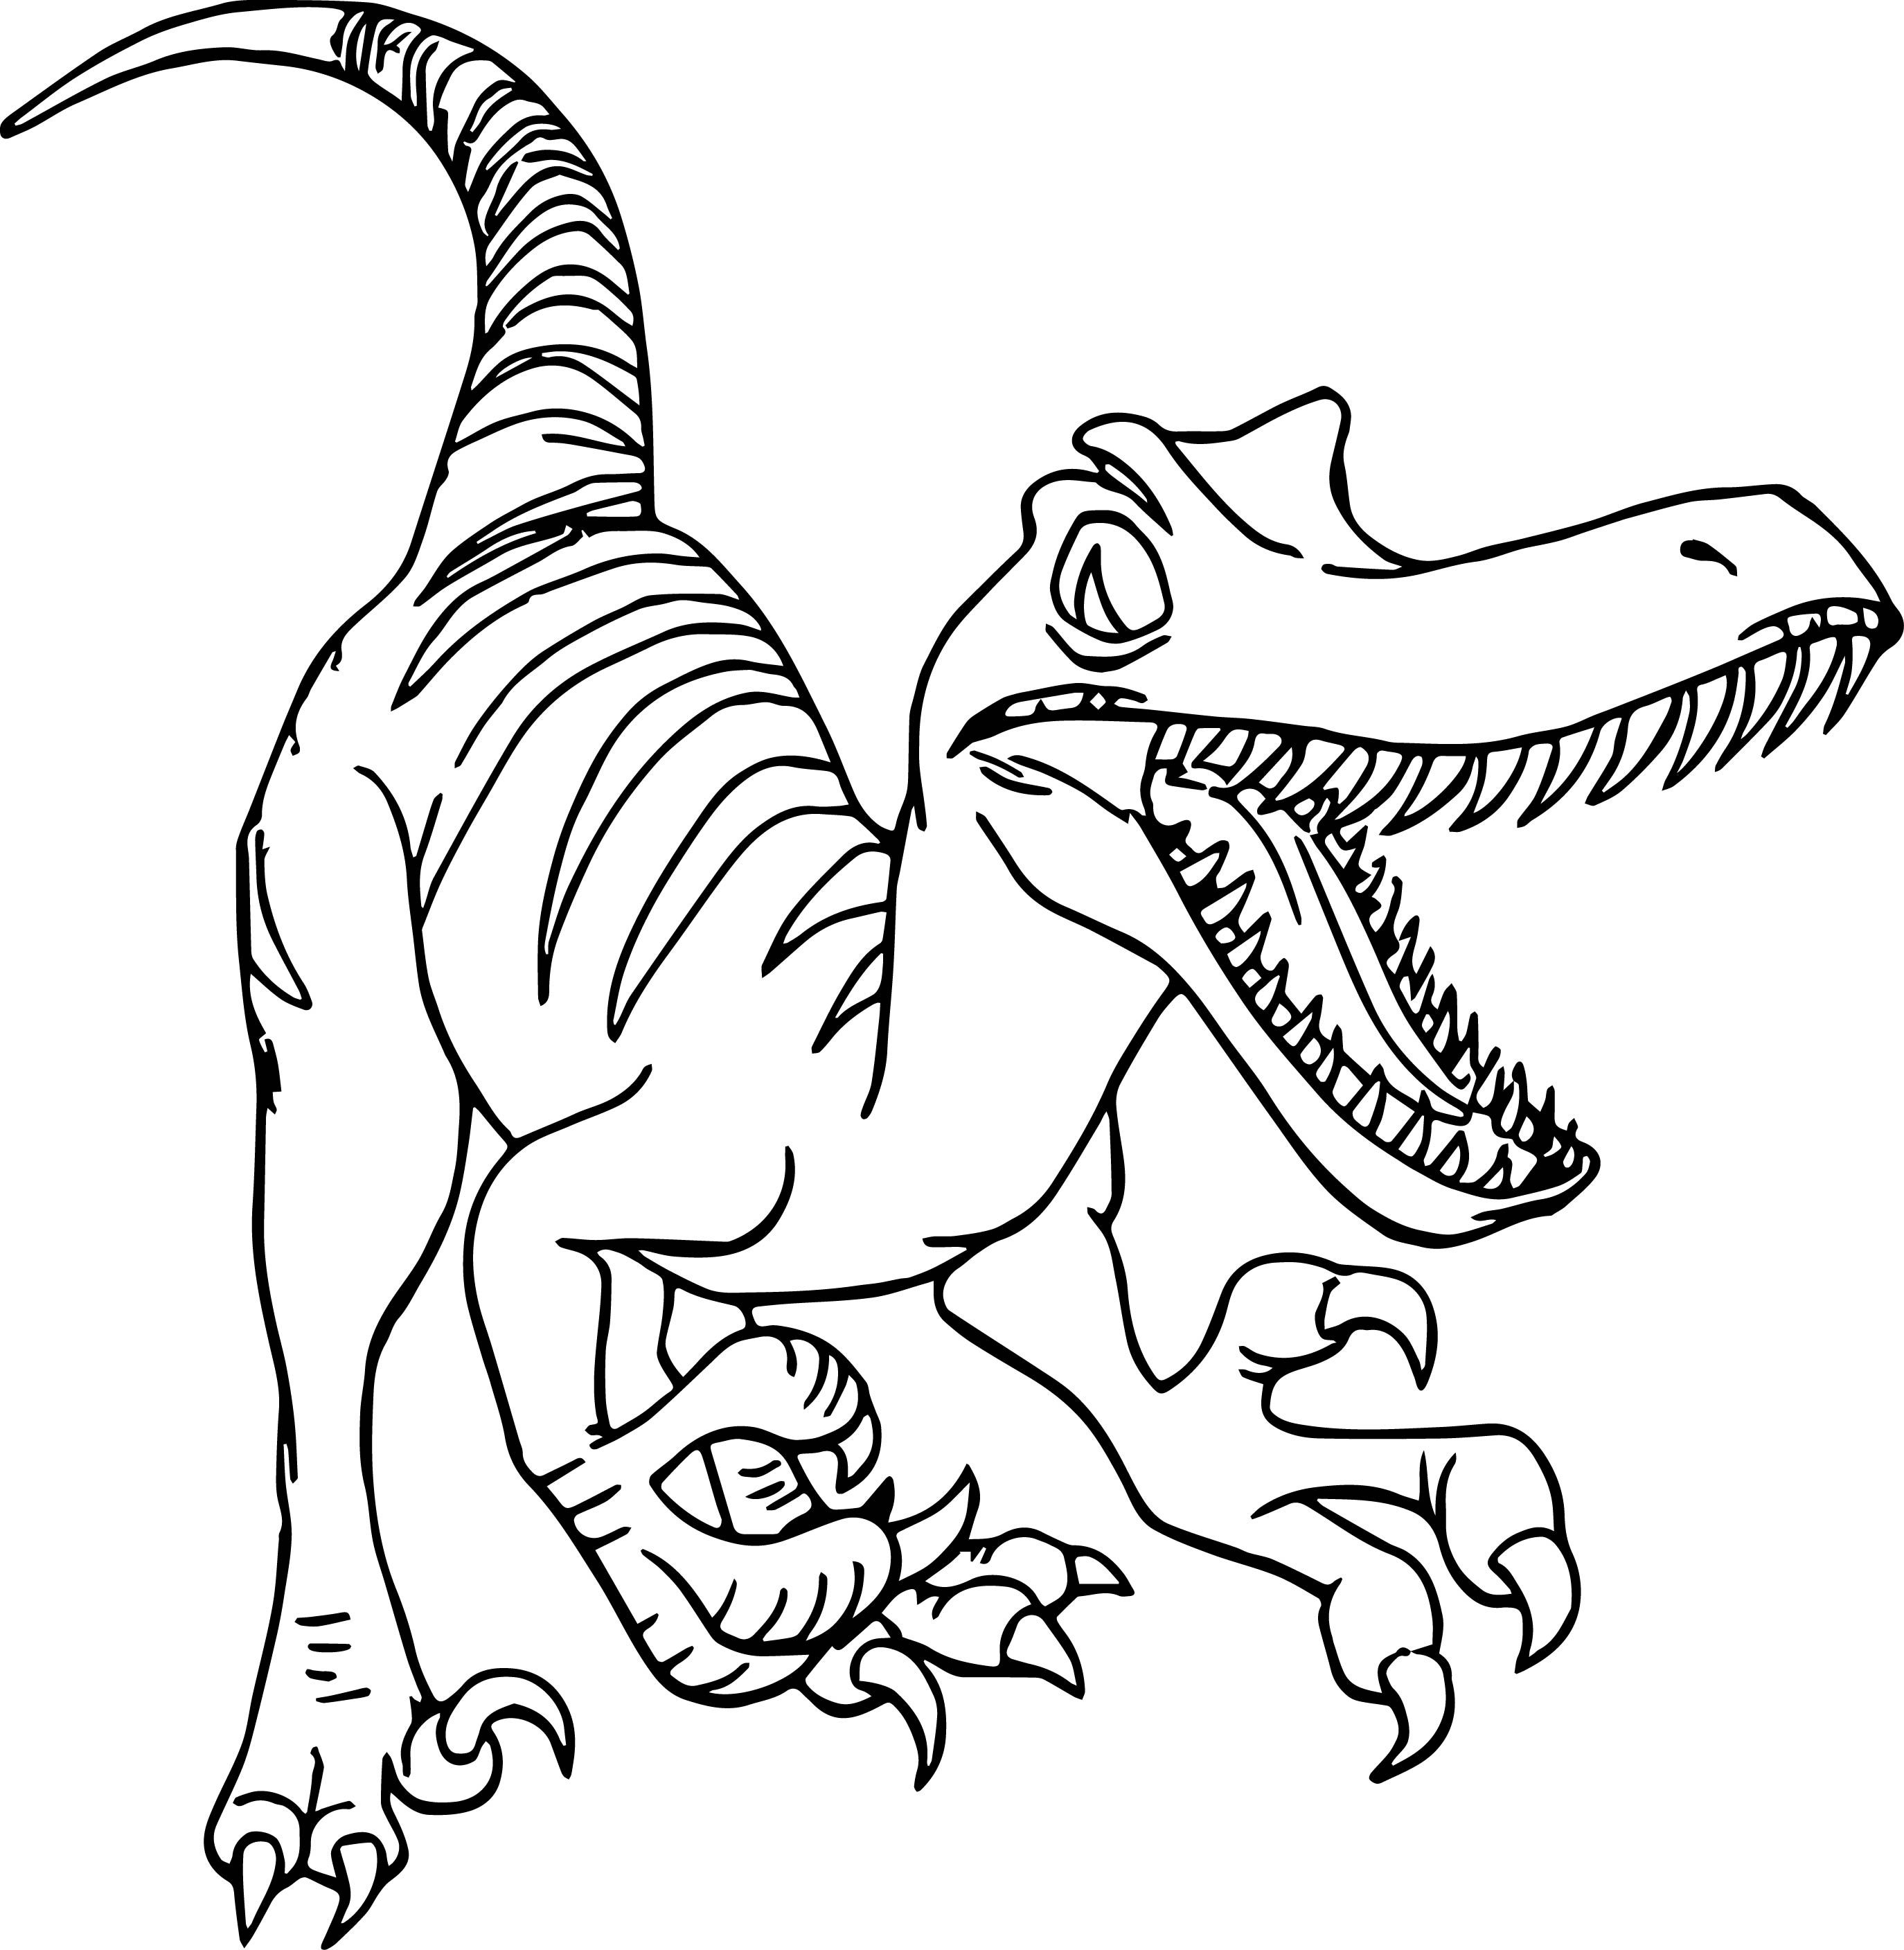 baby velociraptor coloring pages | Raptor Dinosaur Coloring Pages at GetDrawings.com | Free ...